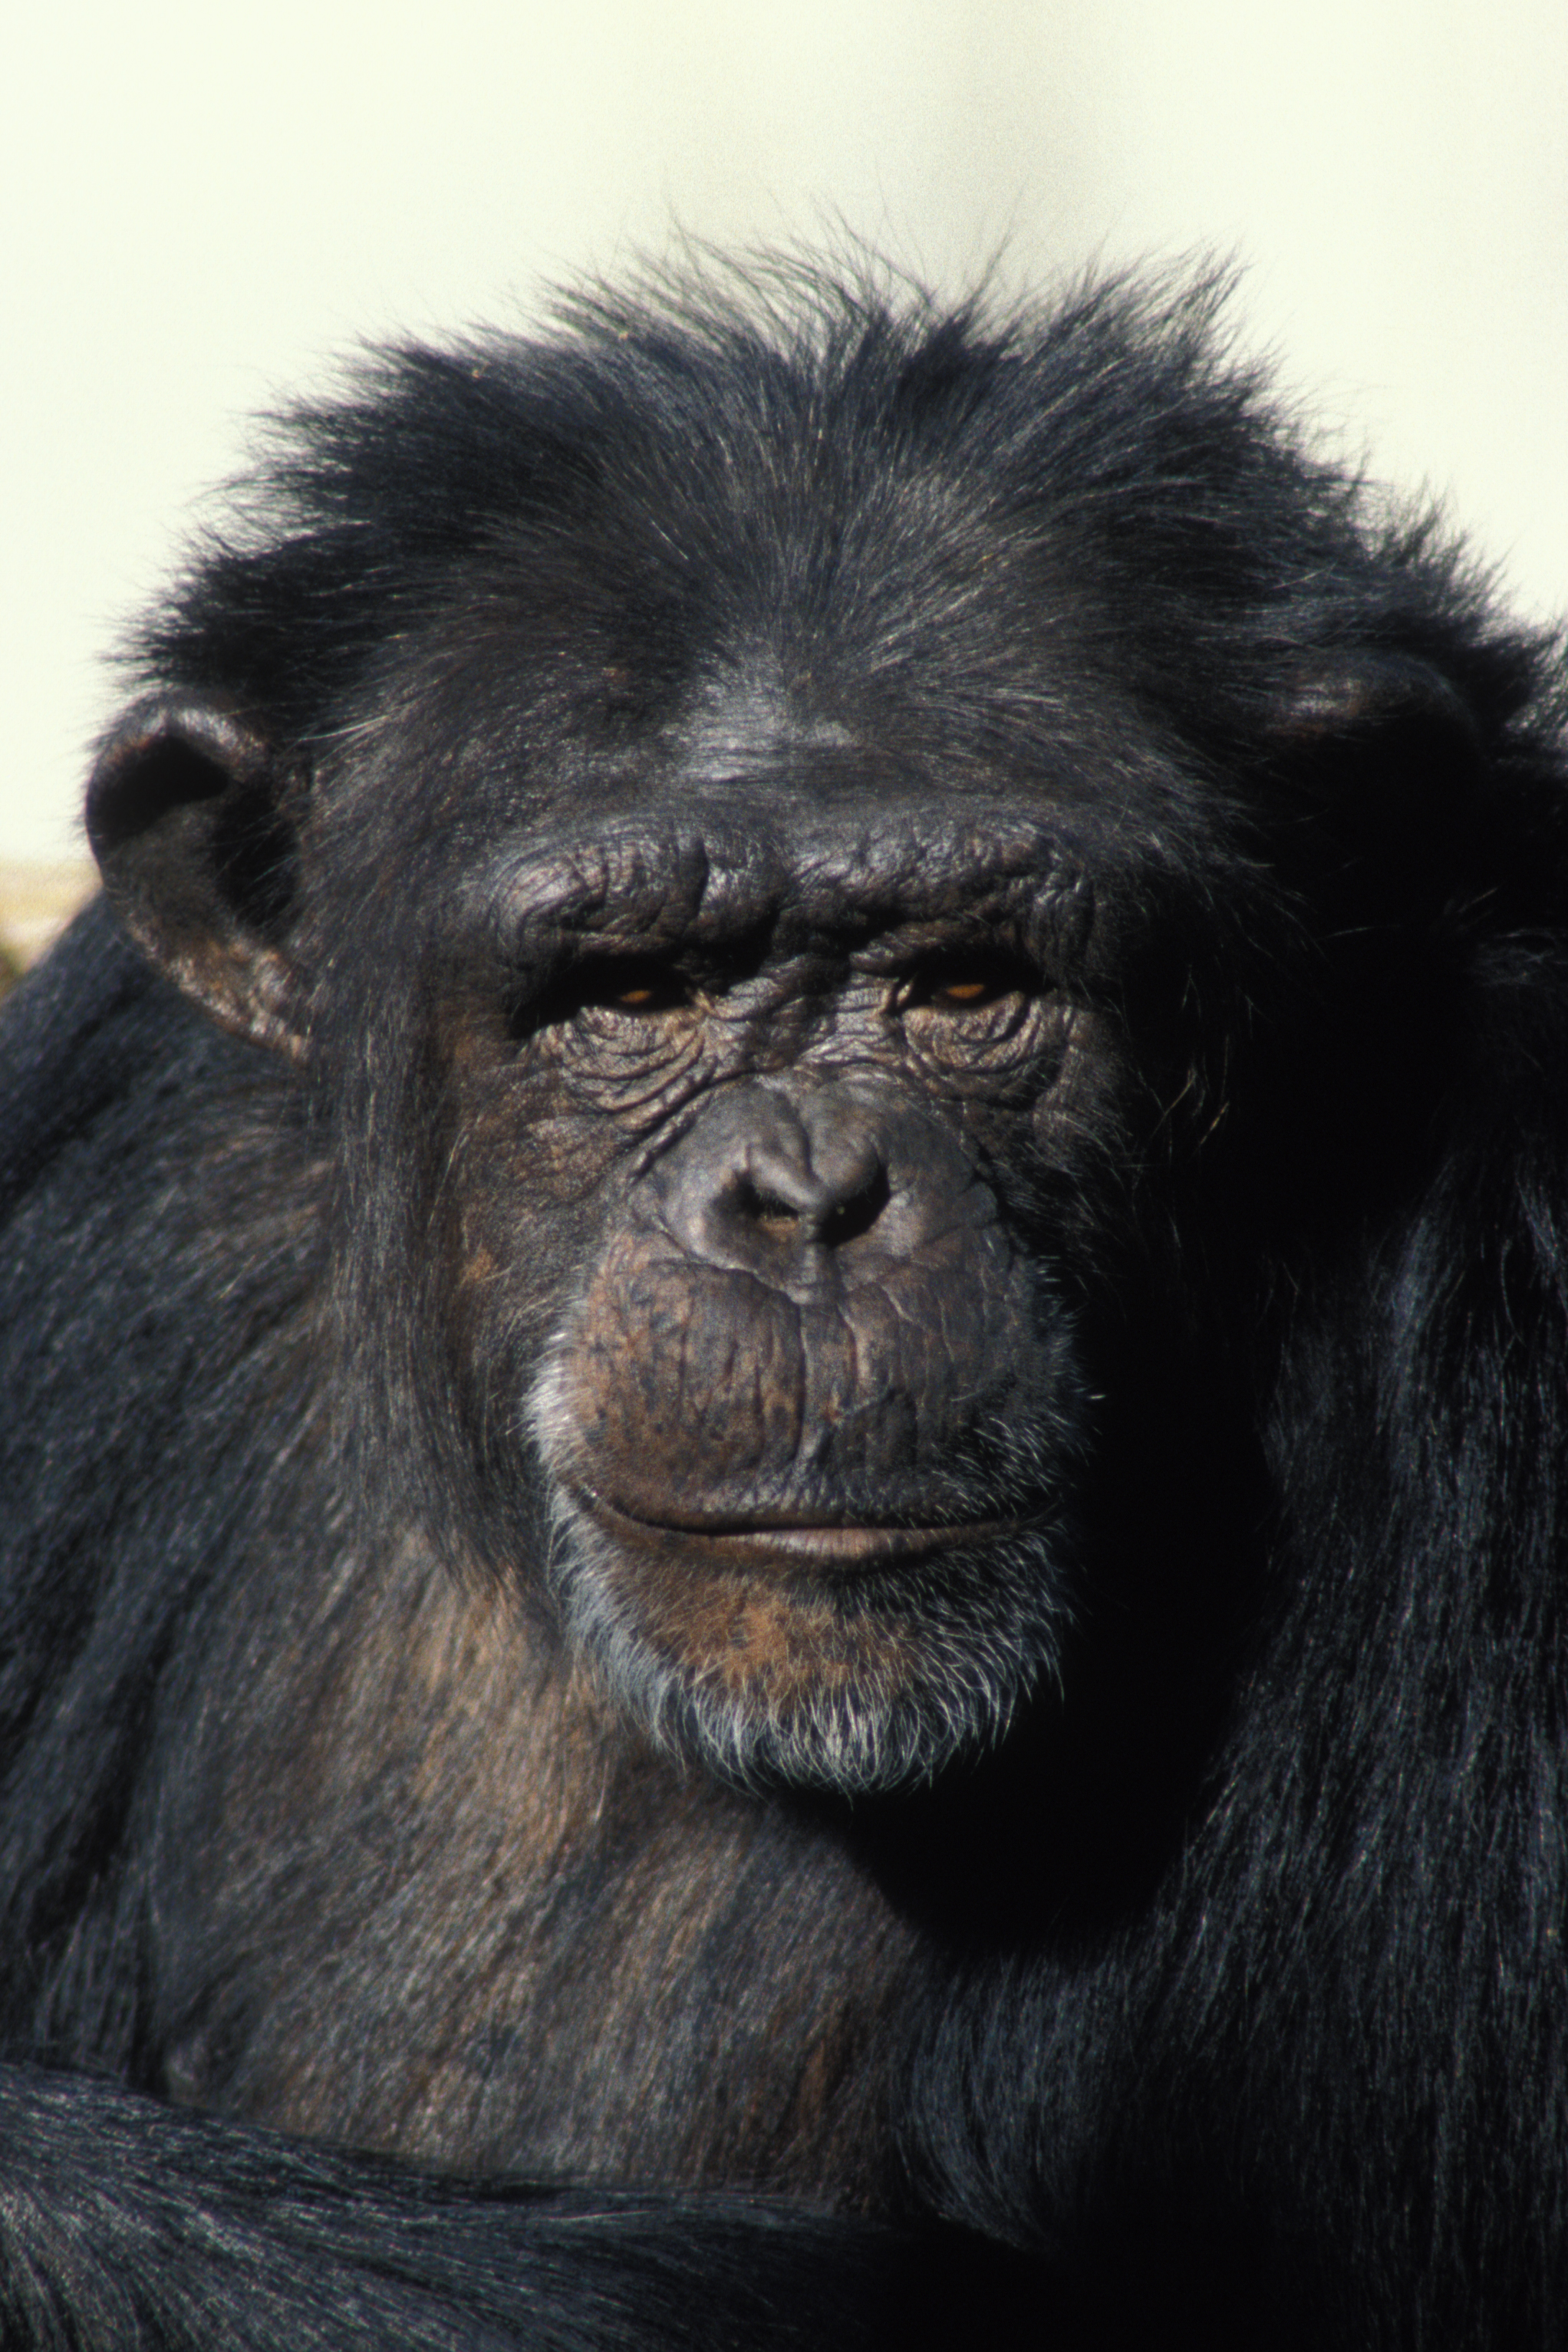 Chimpanzee Images | Crazy Gallery